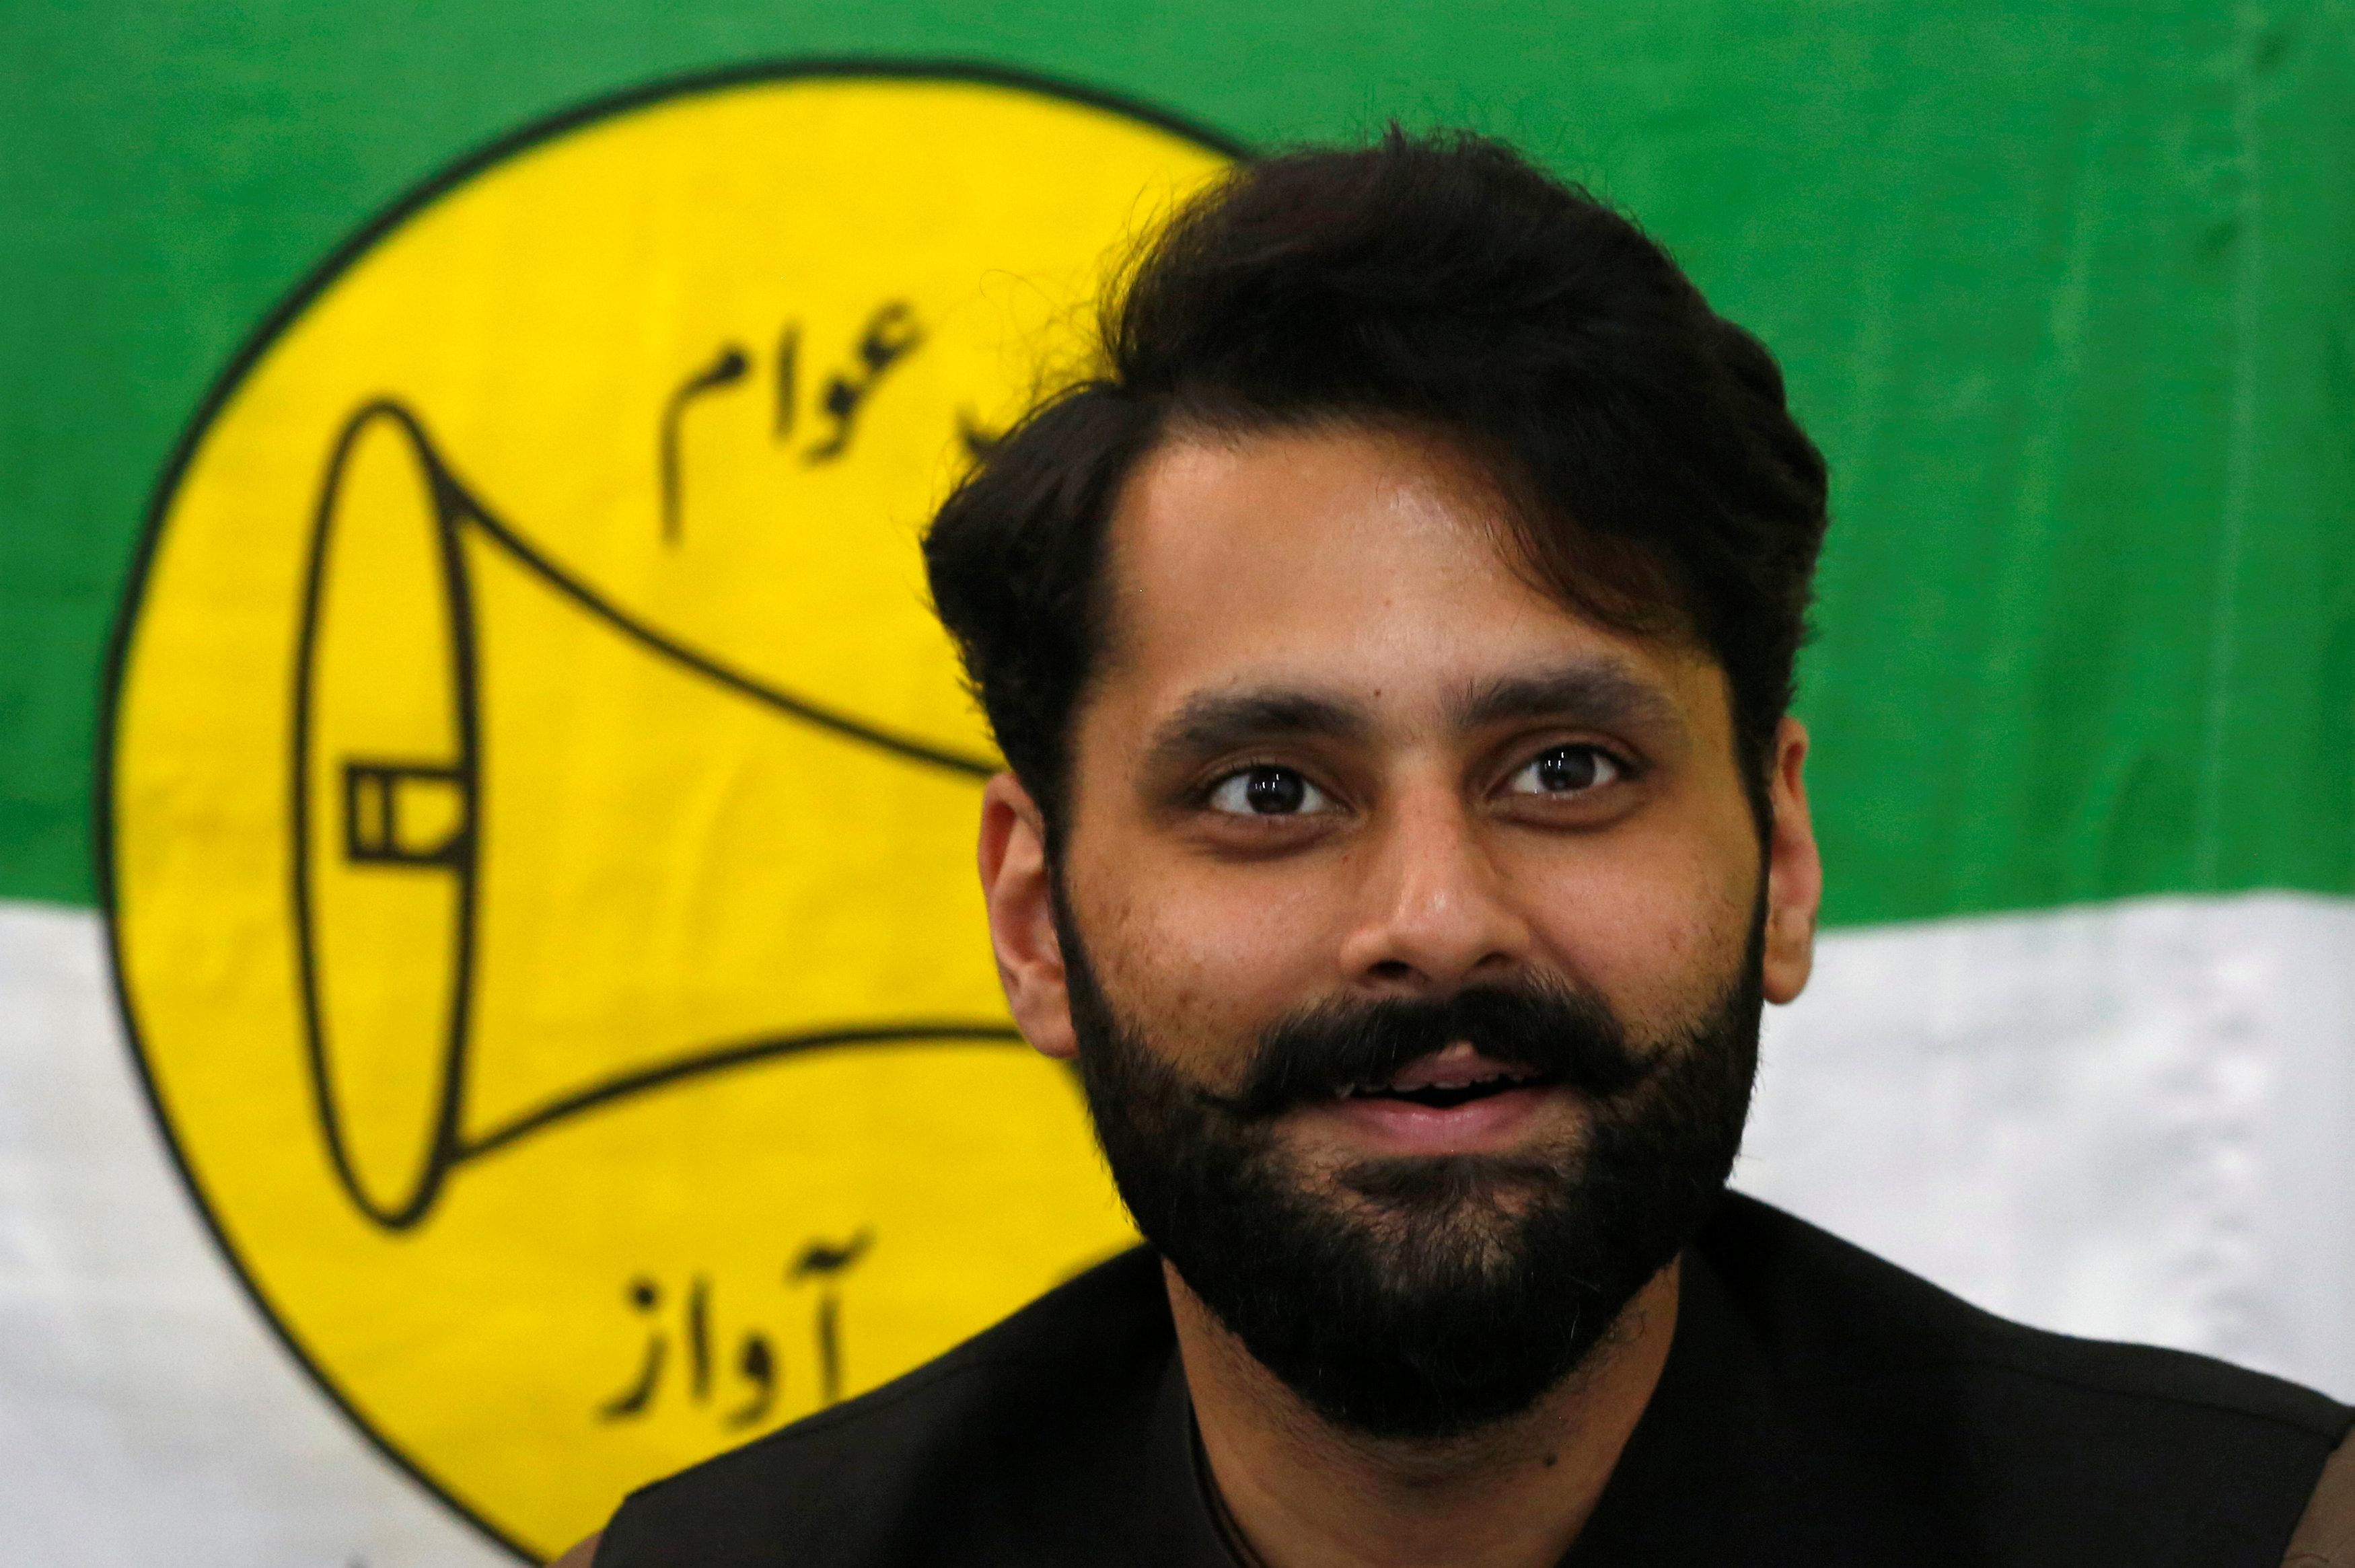 Jibran Nasir, a human rights lawyer and independent candidate for general election, speaks at his office in Karachi, Pakistan July 23, 2018. Akhtar Soomro